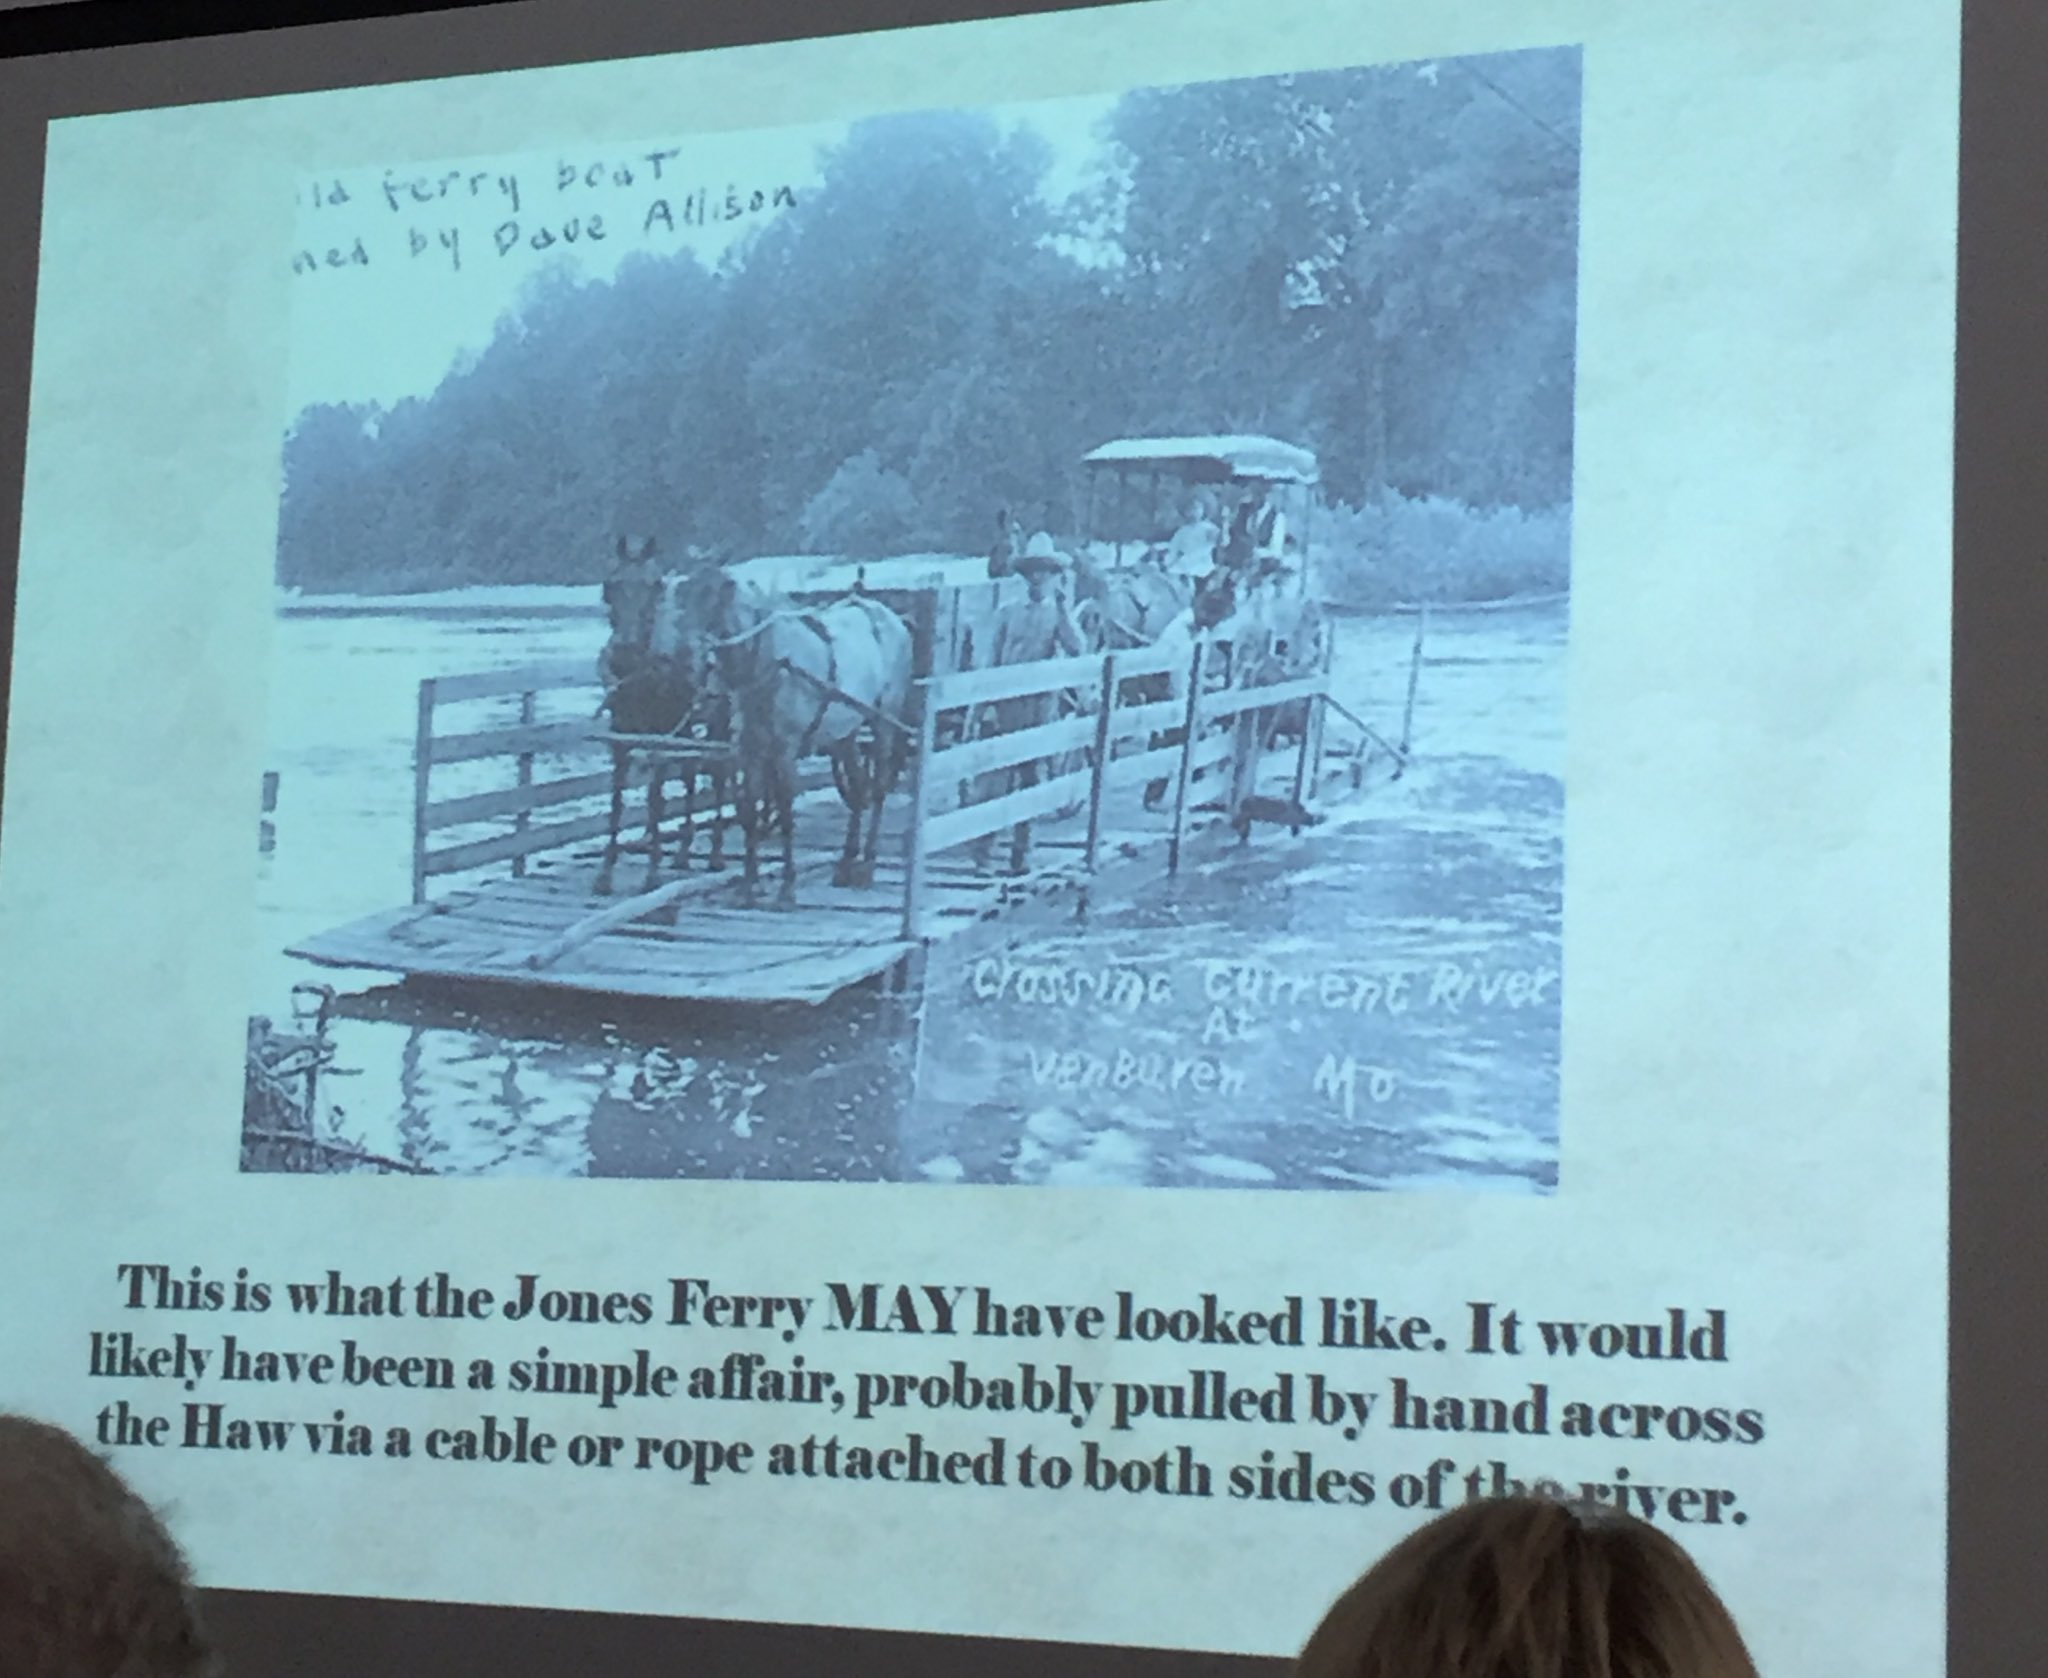 @chpublib Not the actual #jonesferry but what it may have looked like! https://t.co/0CtF2LqR3g